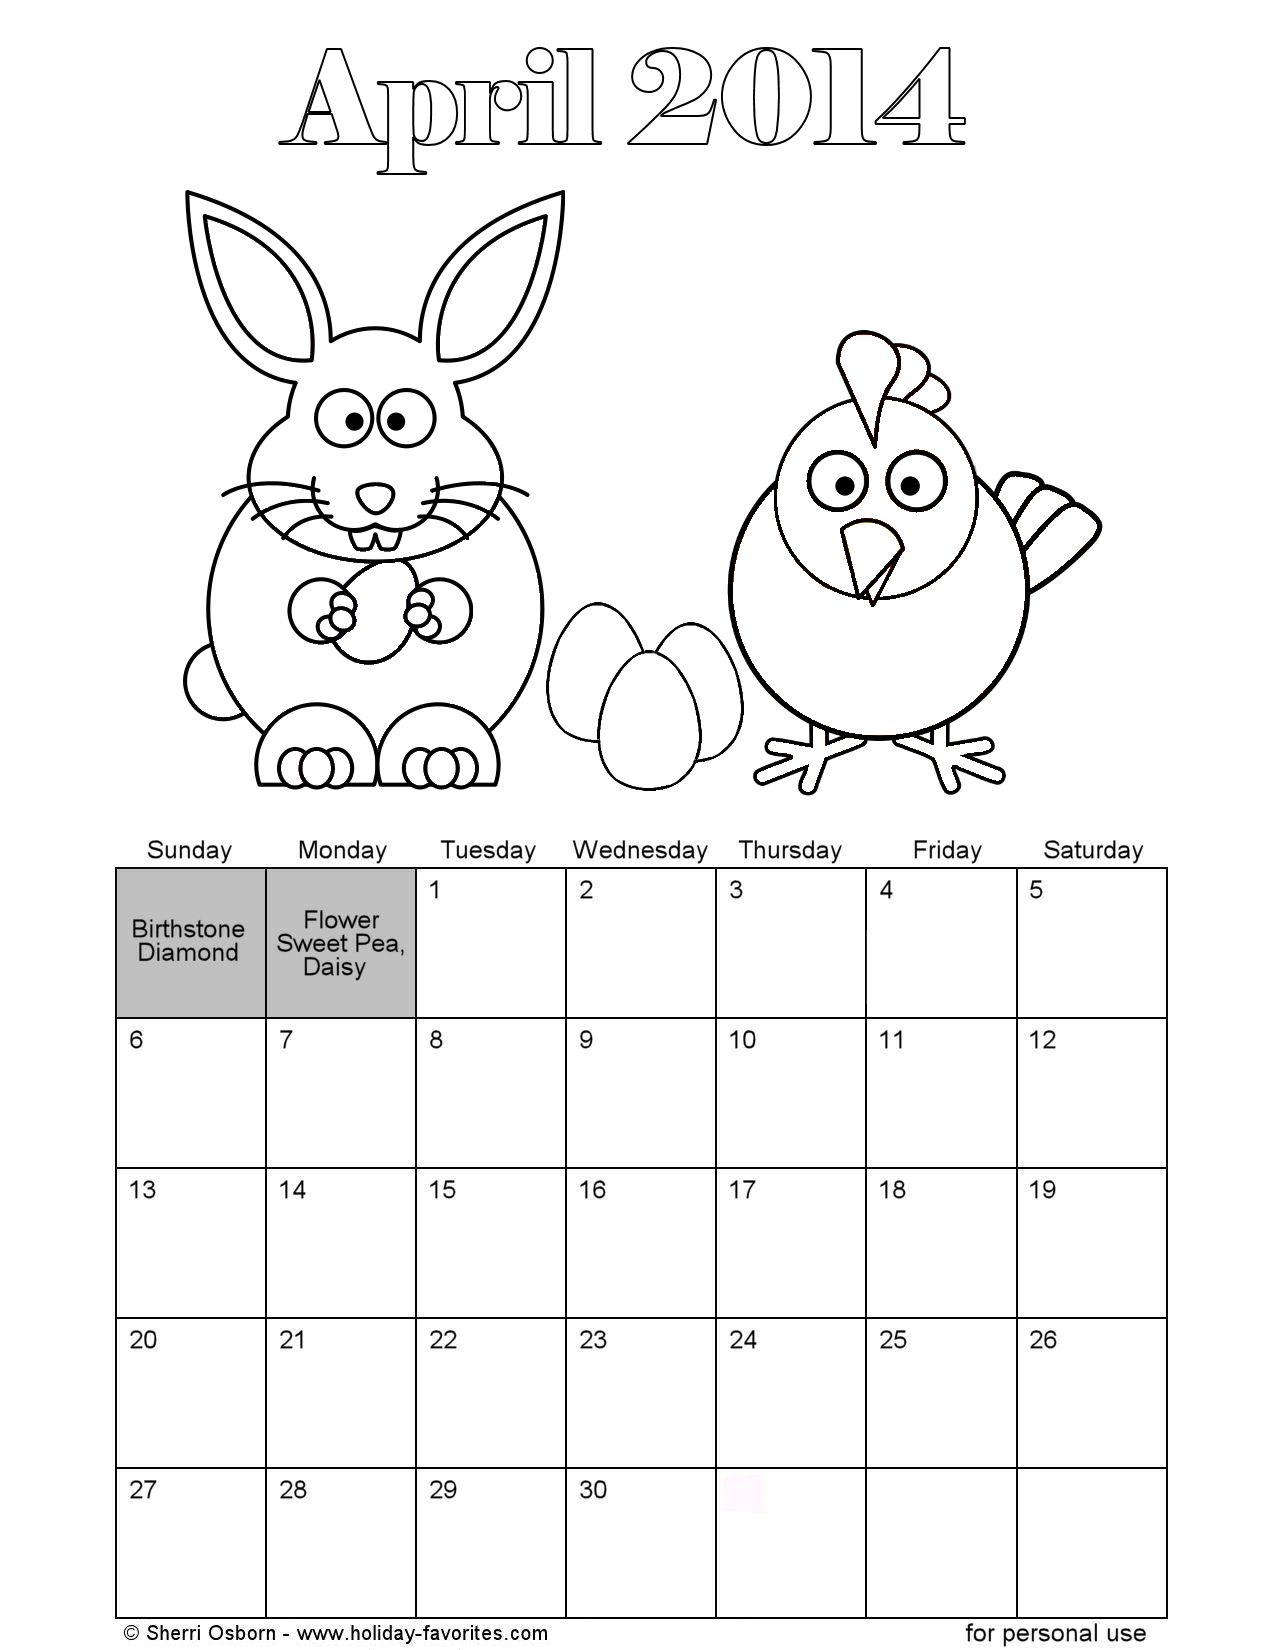 April Calendar Easter : Printable april calendars holiday favorites